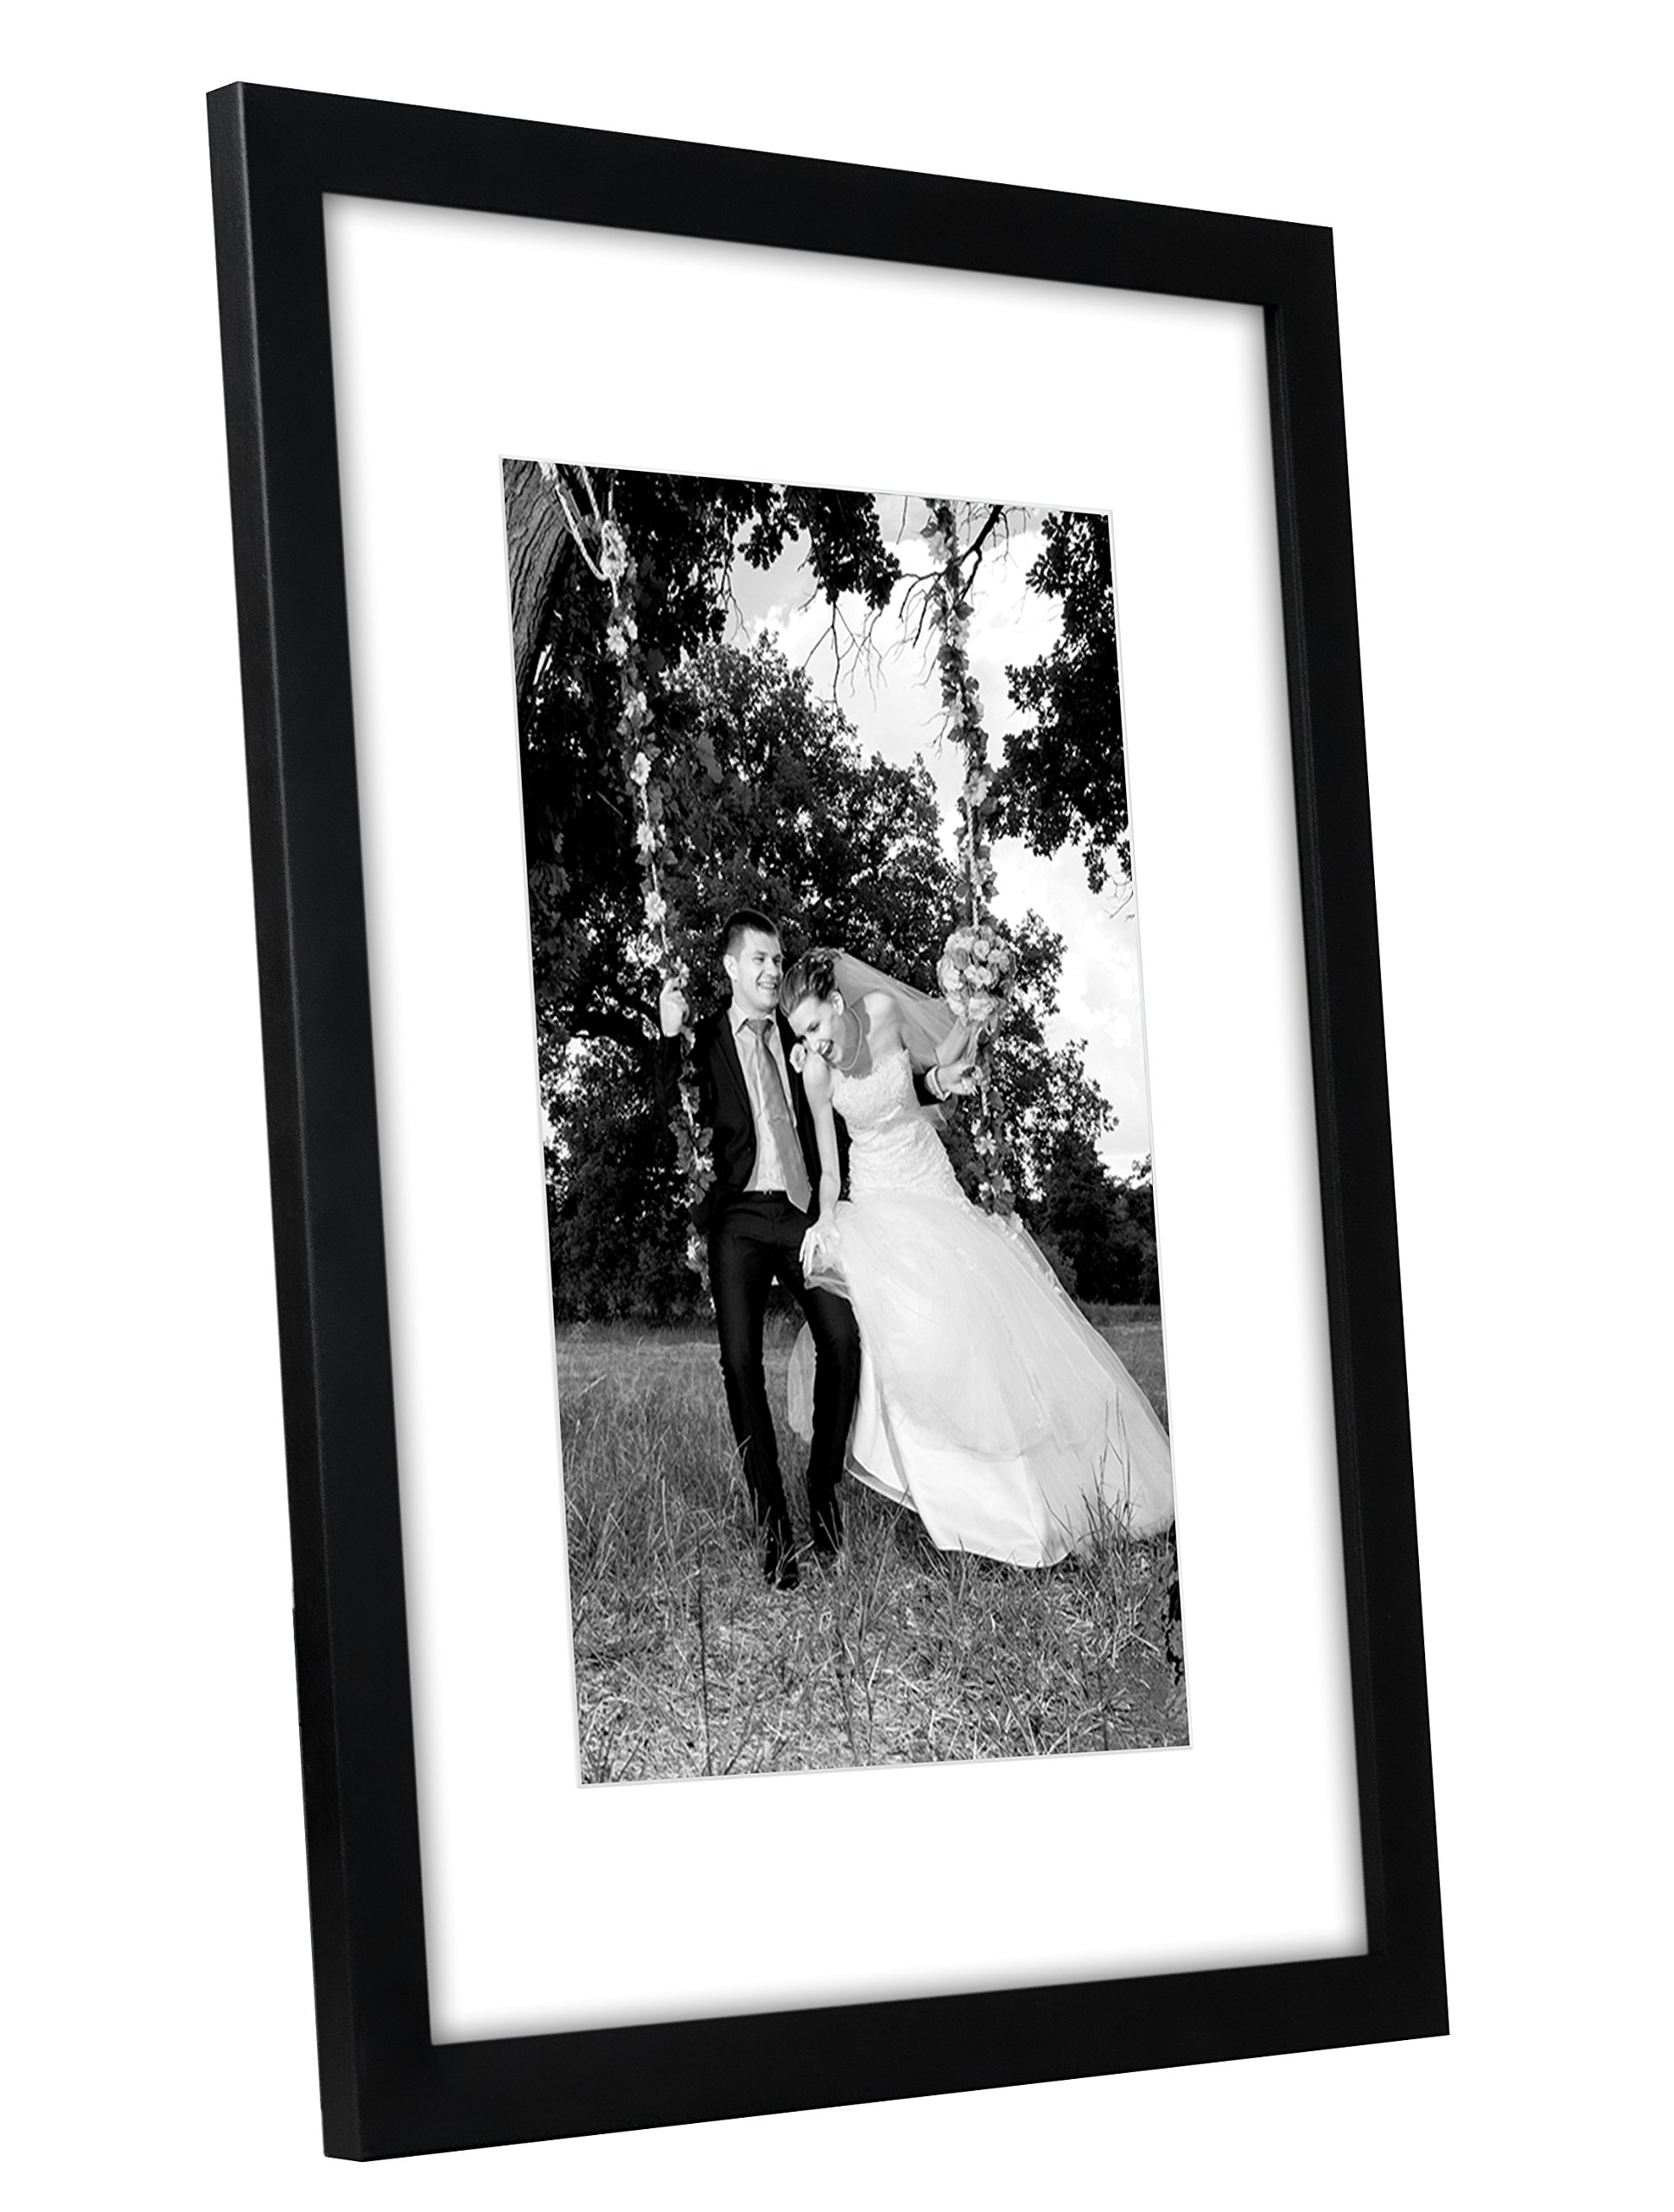 12x16 Black Picture Frame Matted To Fit Pictures 8x12